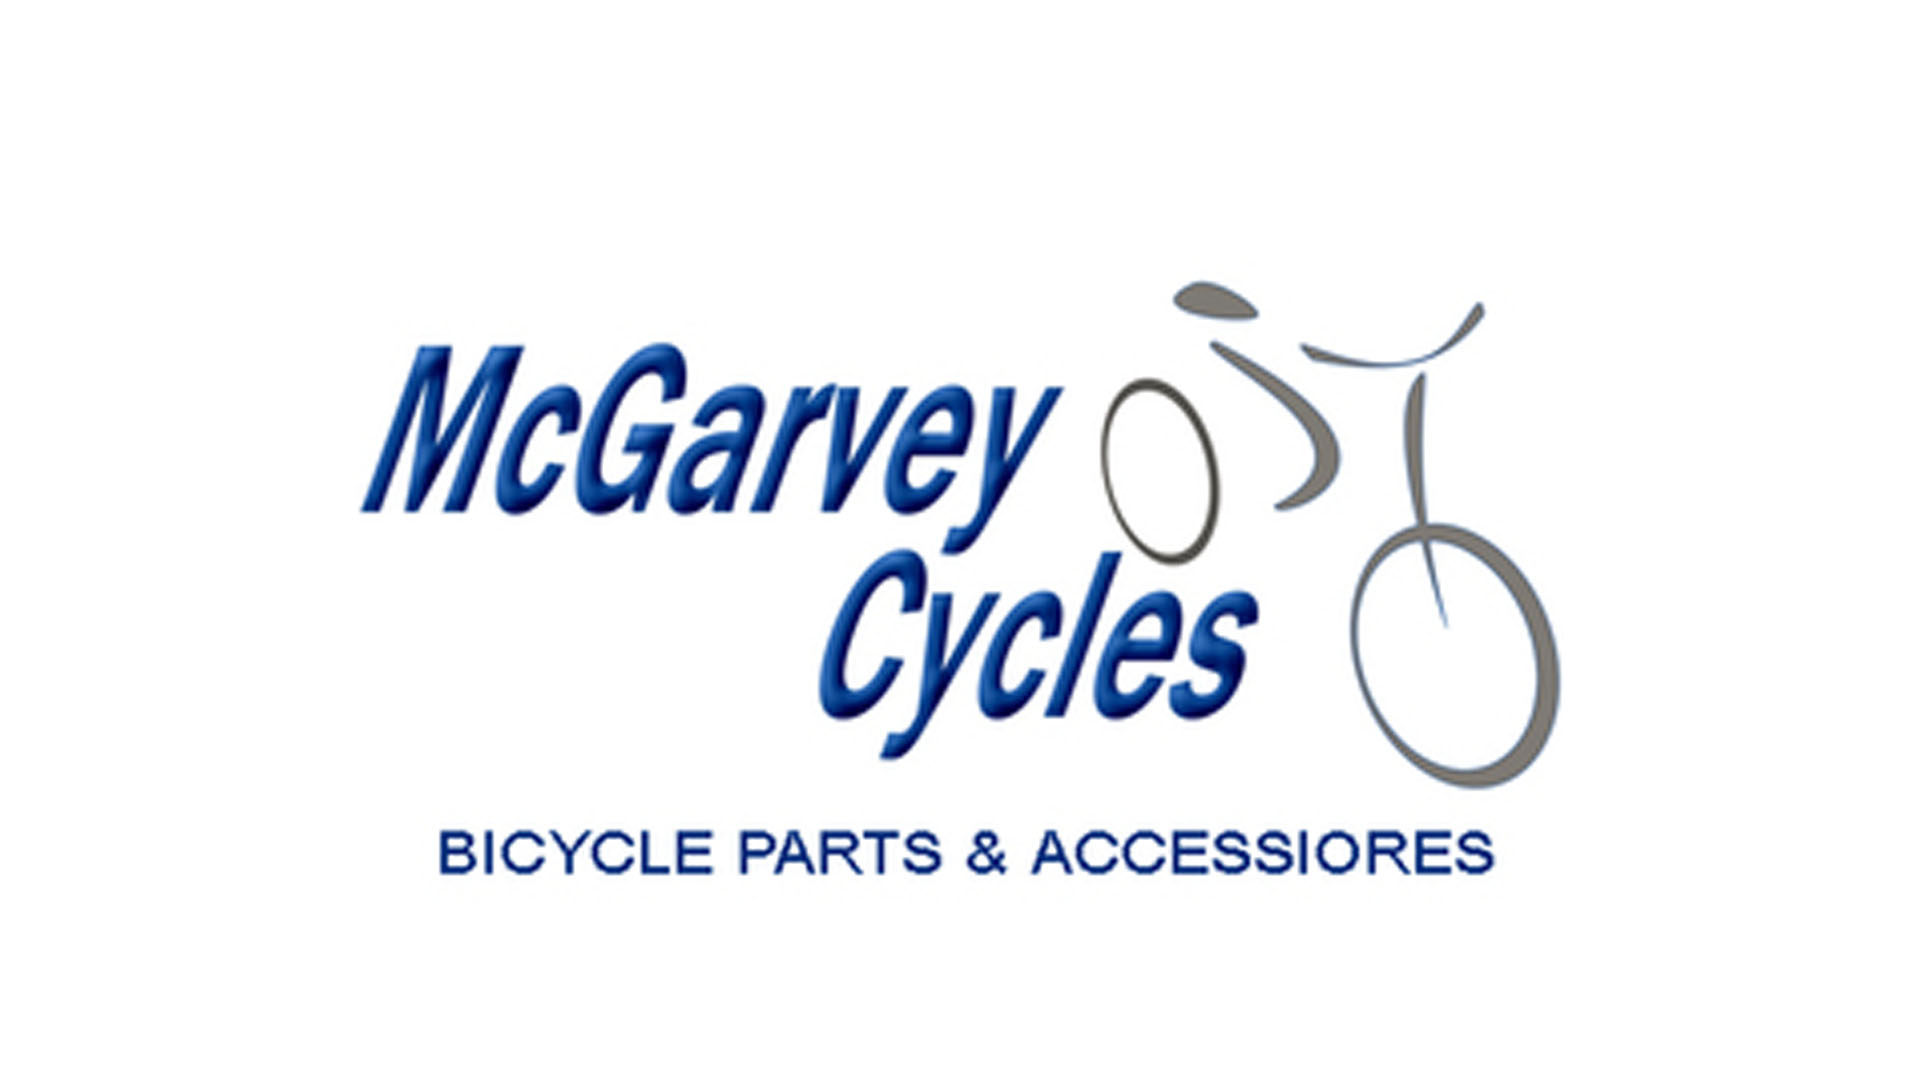 Online Bicycle shop with over 100 years experience. Great range of accessories including saddles, brake blocks & tyres available online & instore.